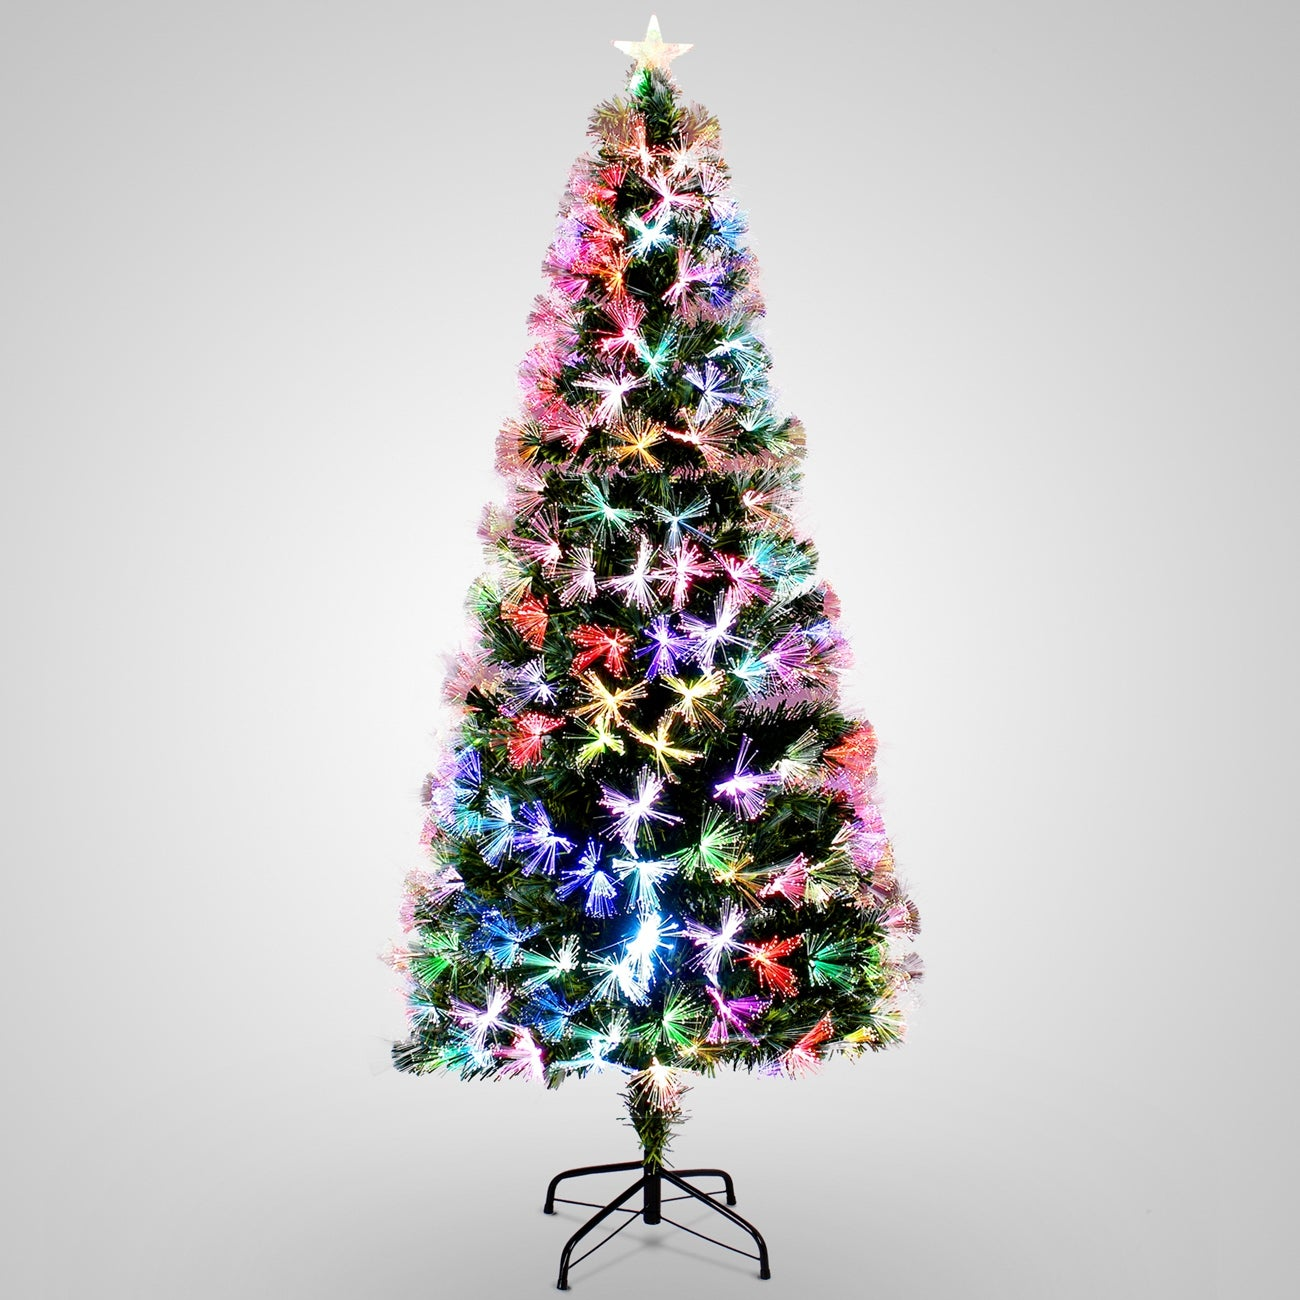 Fiberoptic Christmas Tree.Belleze 7 Feet Artificial Pre Lit Fiber Optic Christmas Tree Color Light Snowflakes Top Star Decorations With Stand